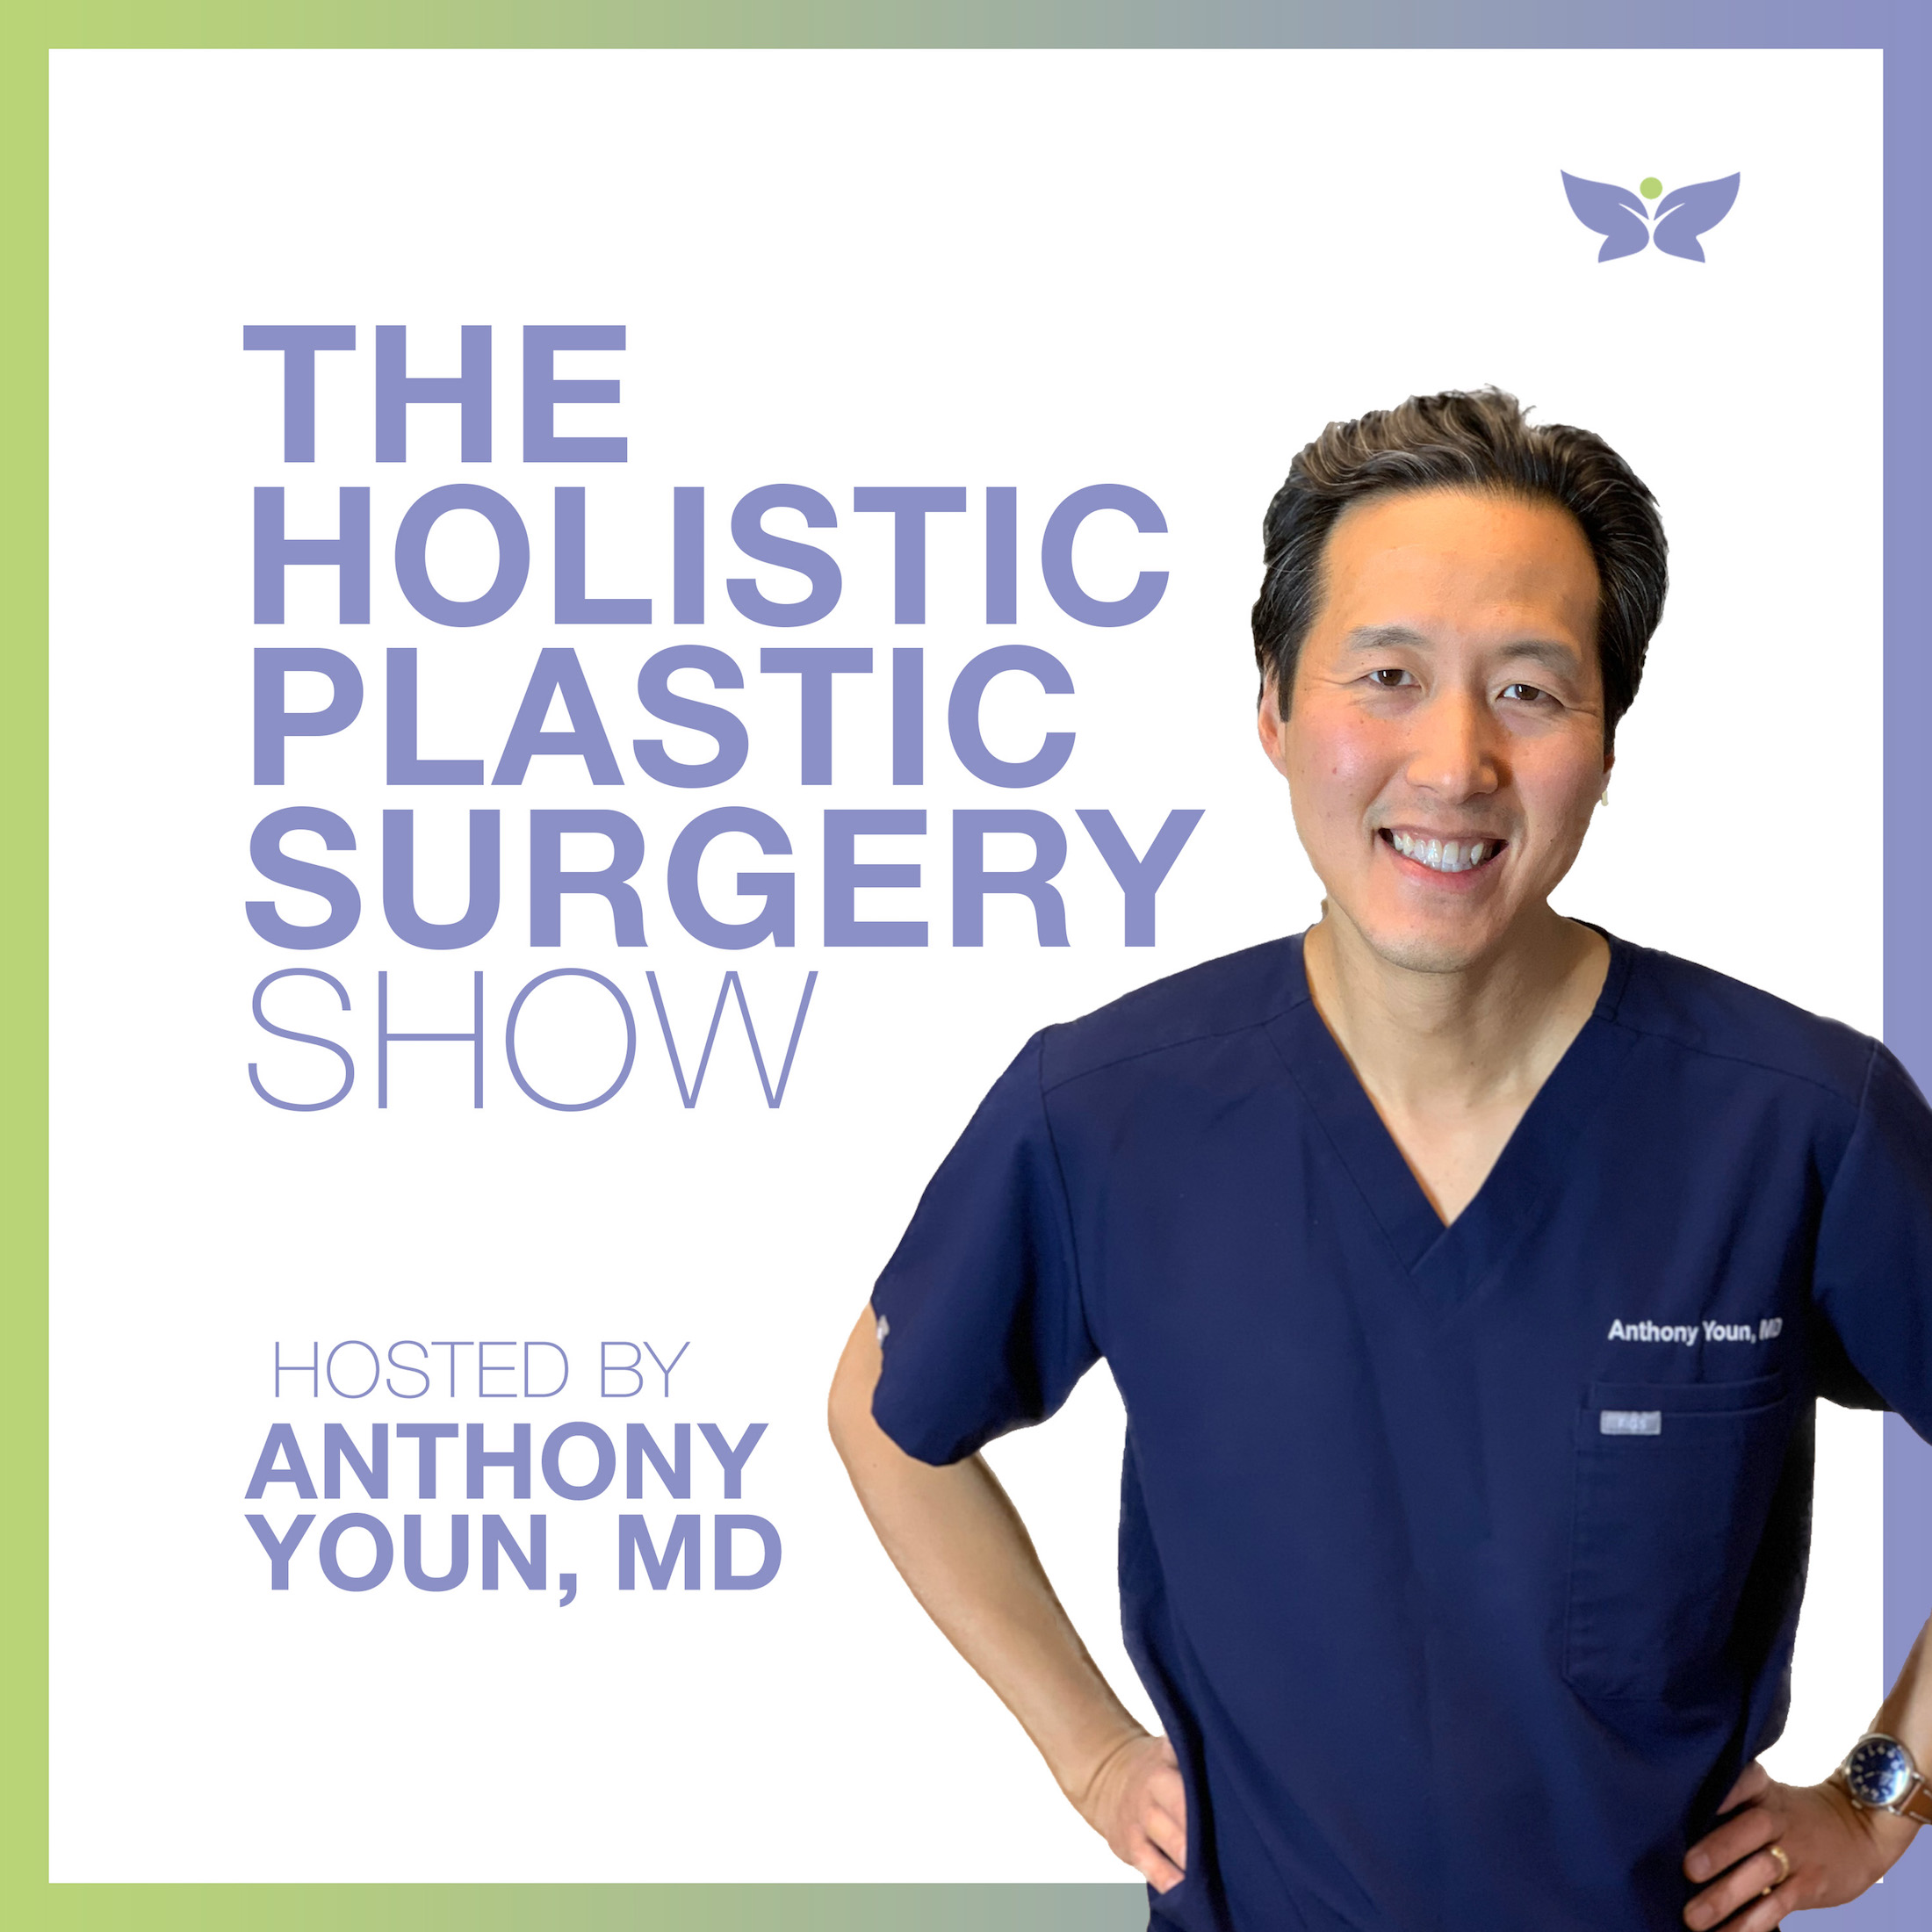 Holistic Plastic Surgery Show